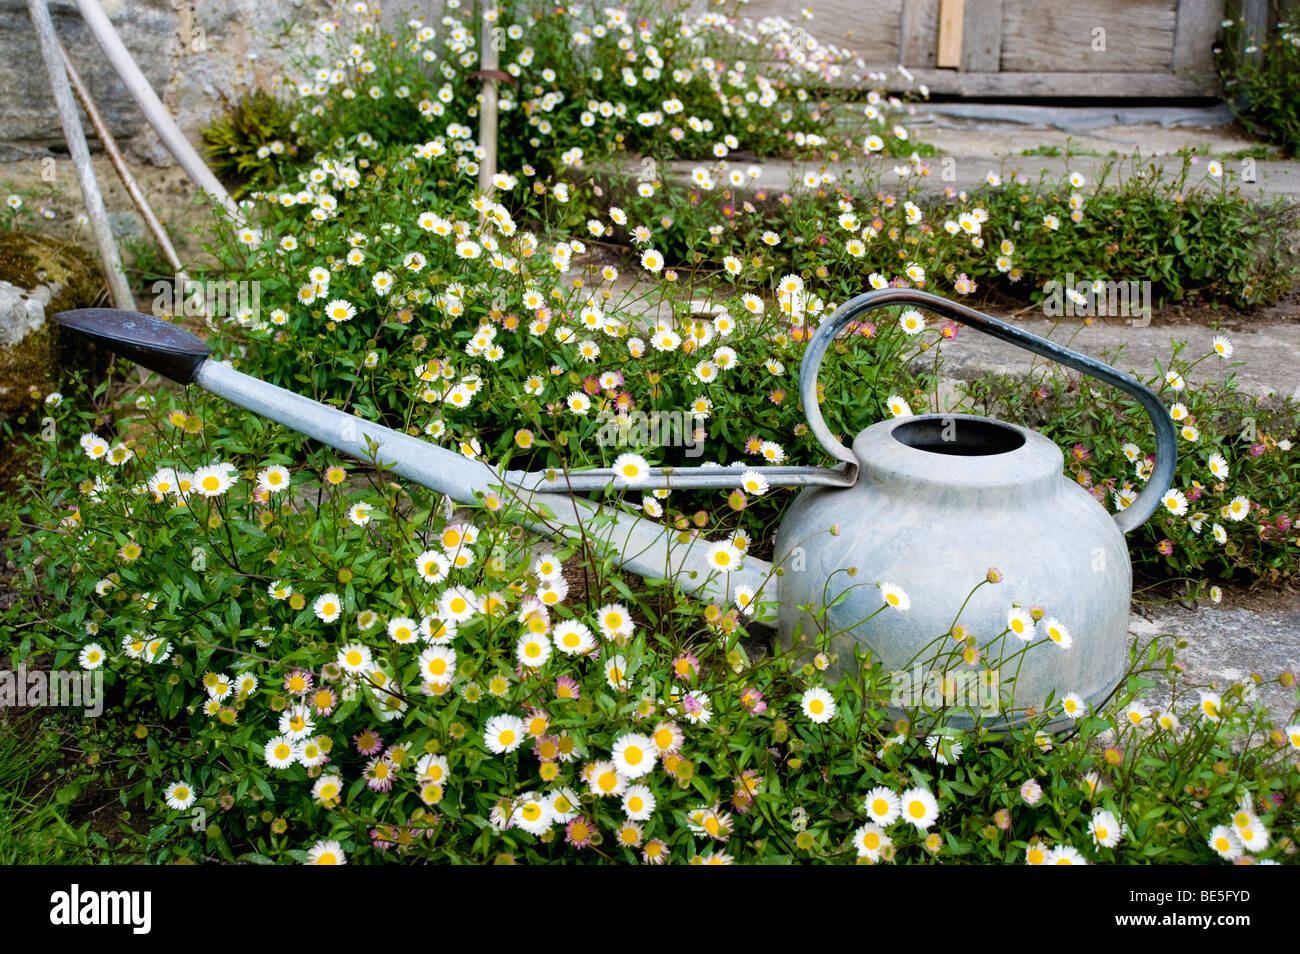 Galvanized Watering Can - Stock Image